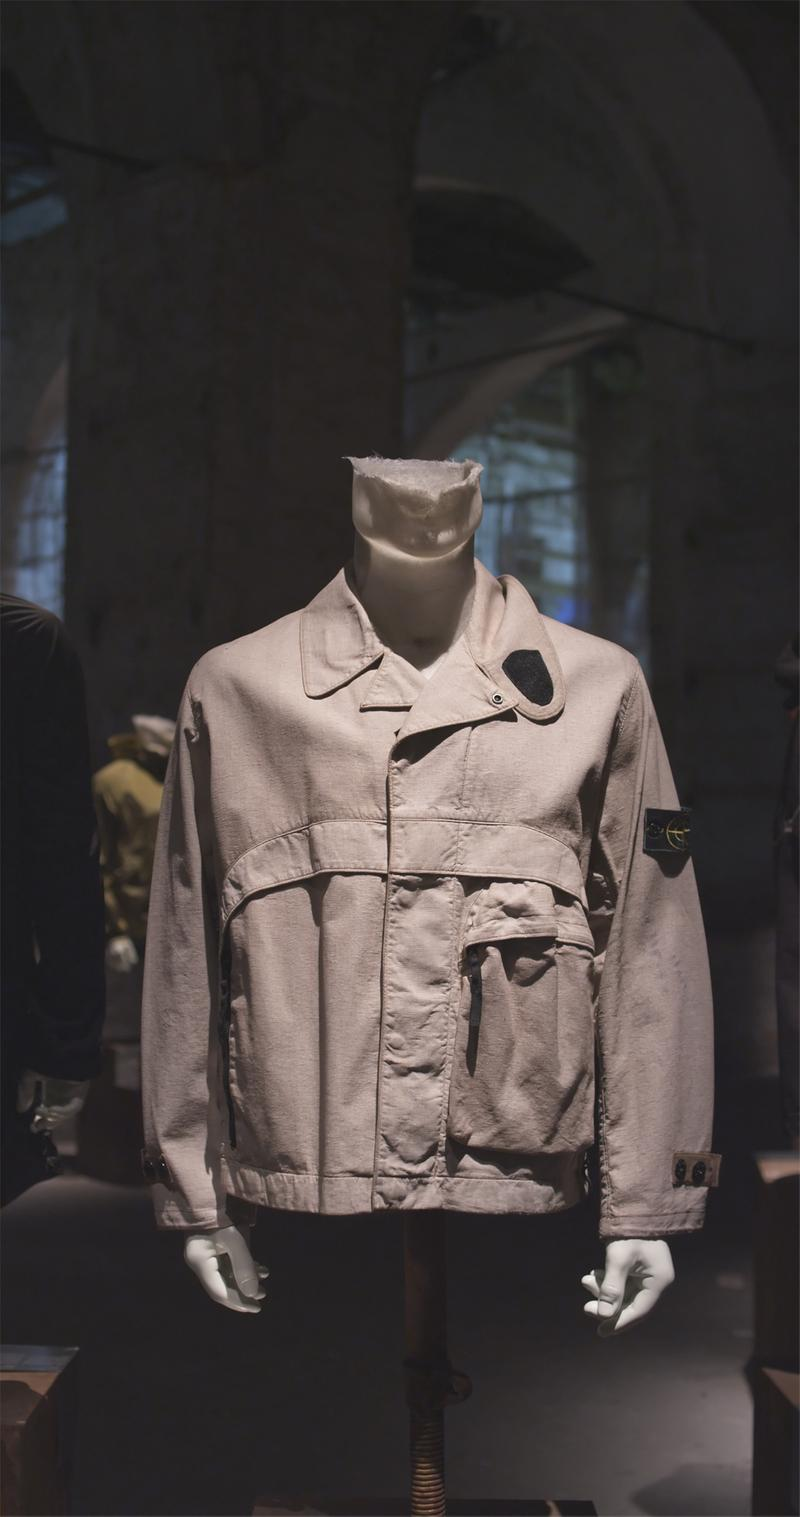 Light colored jacket displayed on mannequin bust with double collar, button closure, large side pocket, and Stone Island badge on upper left sleeve